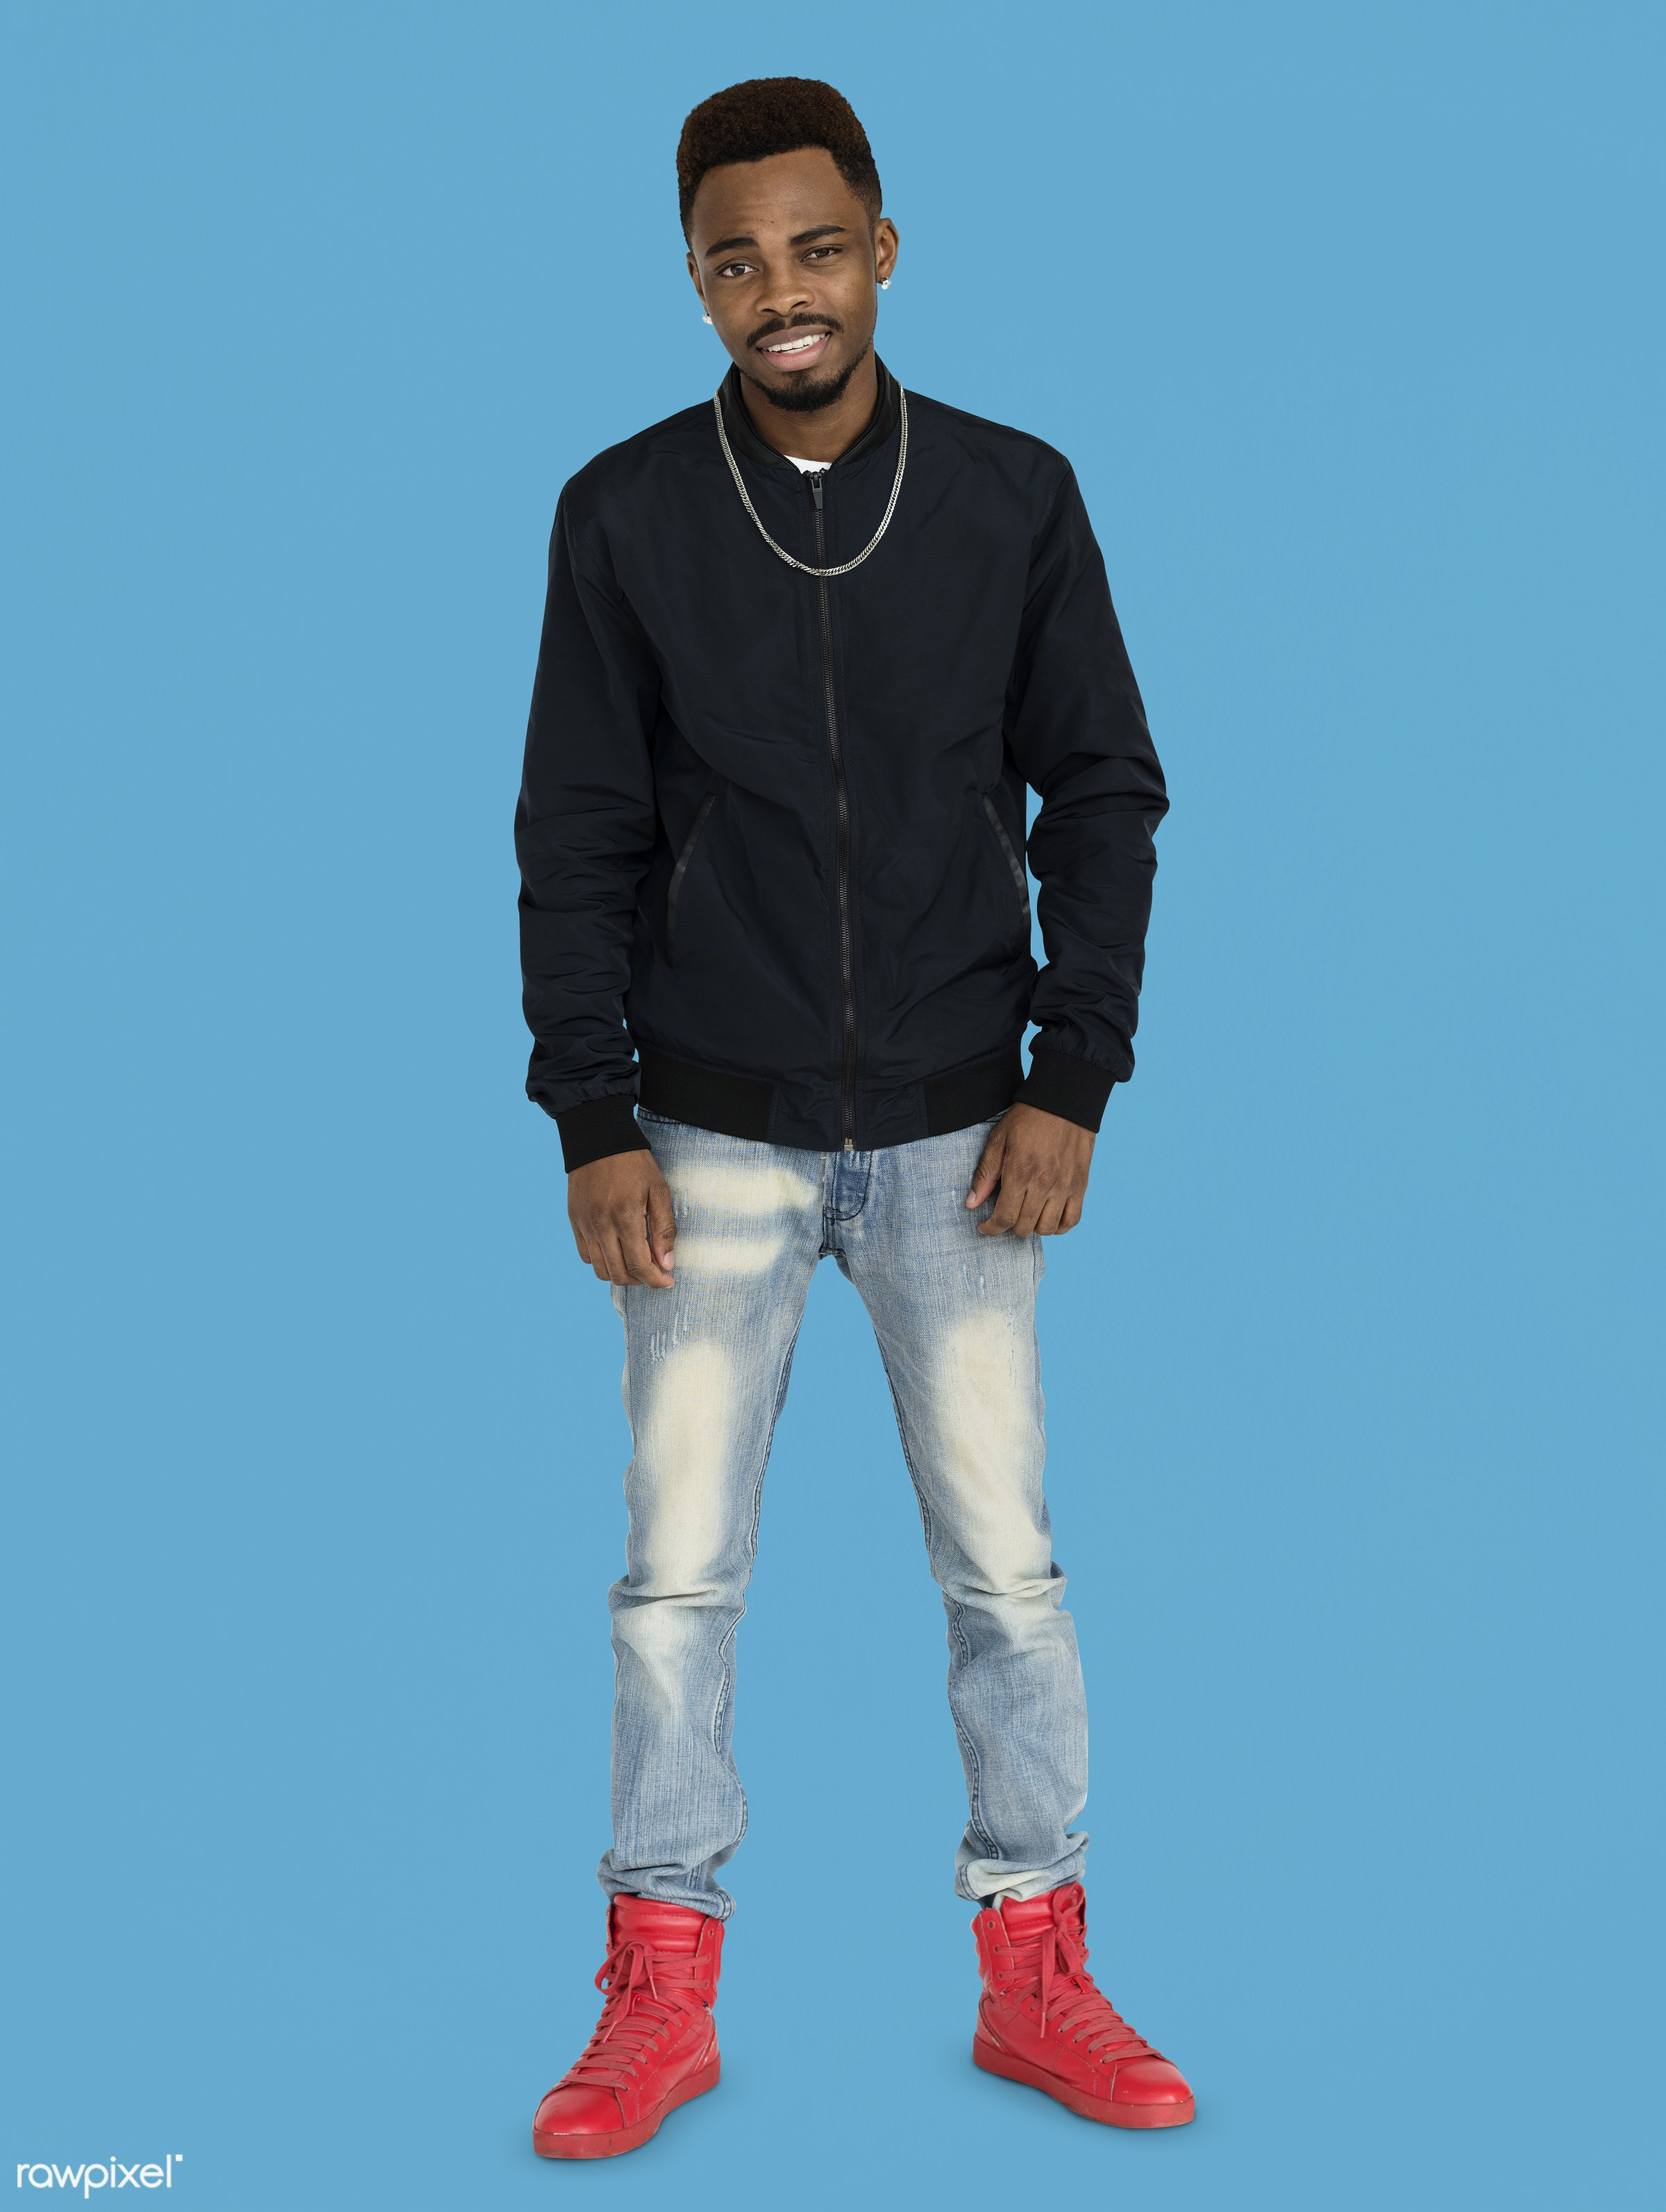 studio, expression, face, person, joy, people, style, solo, fresh, happy, casual, smile, cheerful, man, smiling, black,...